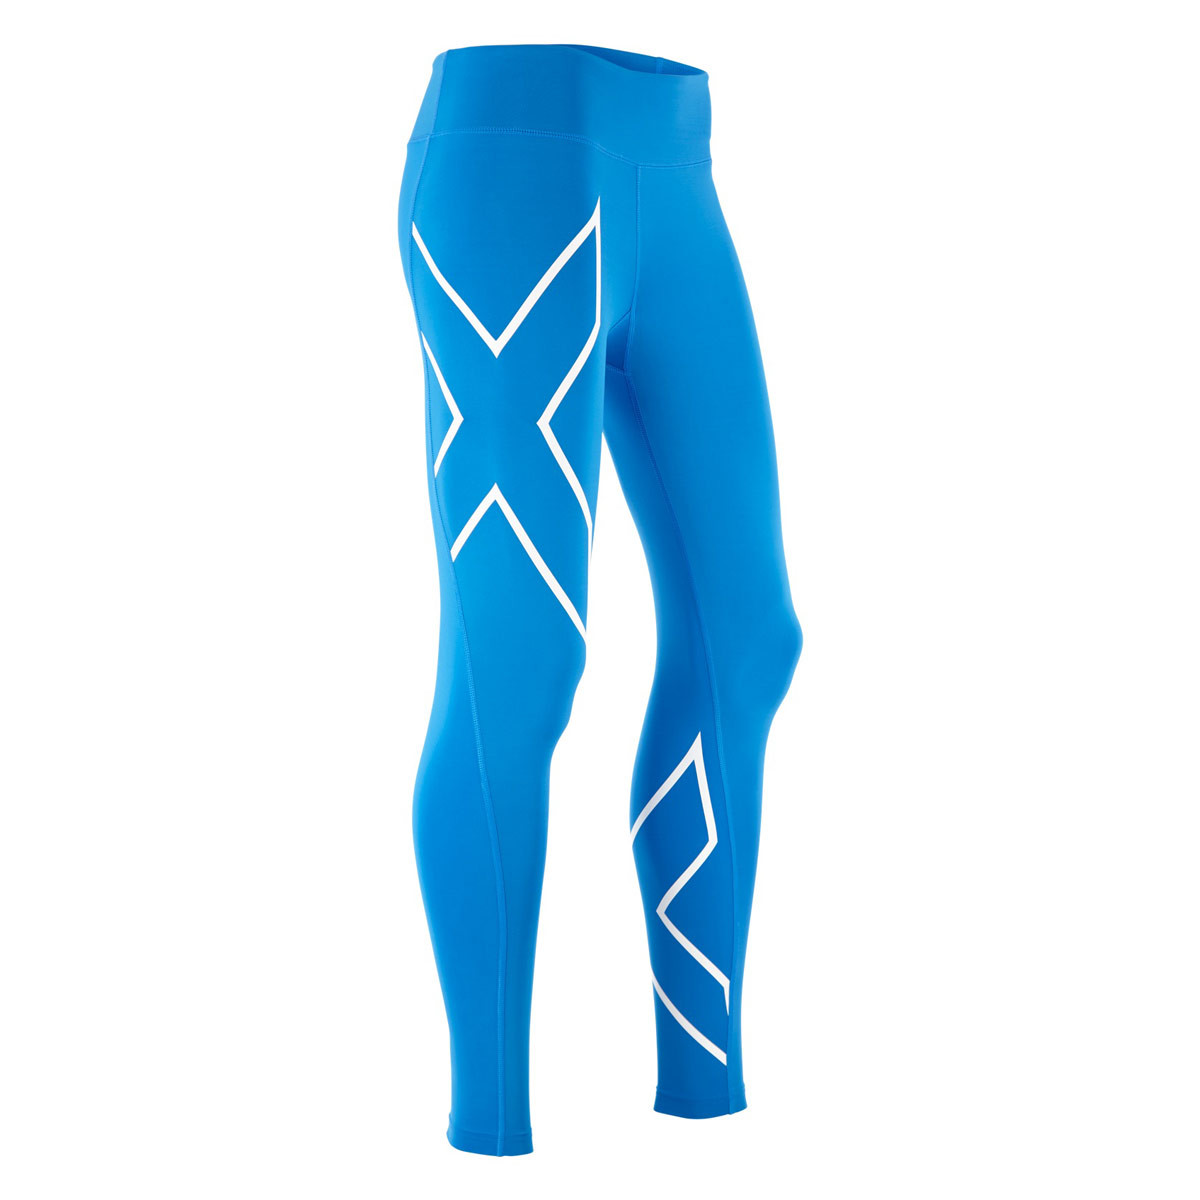 f0cca5a56327c 2XU Mid-Rise Compression Tights - Running trousers for Women - Blue | 21RUN